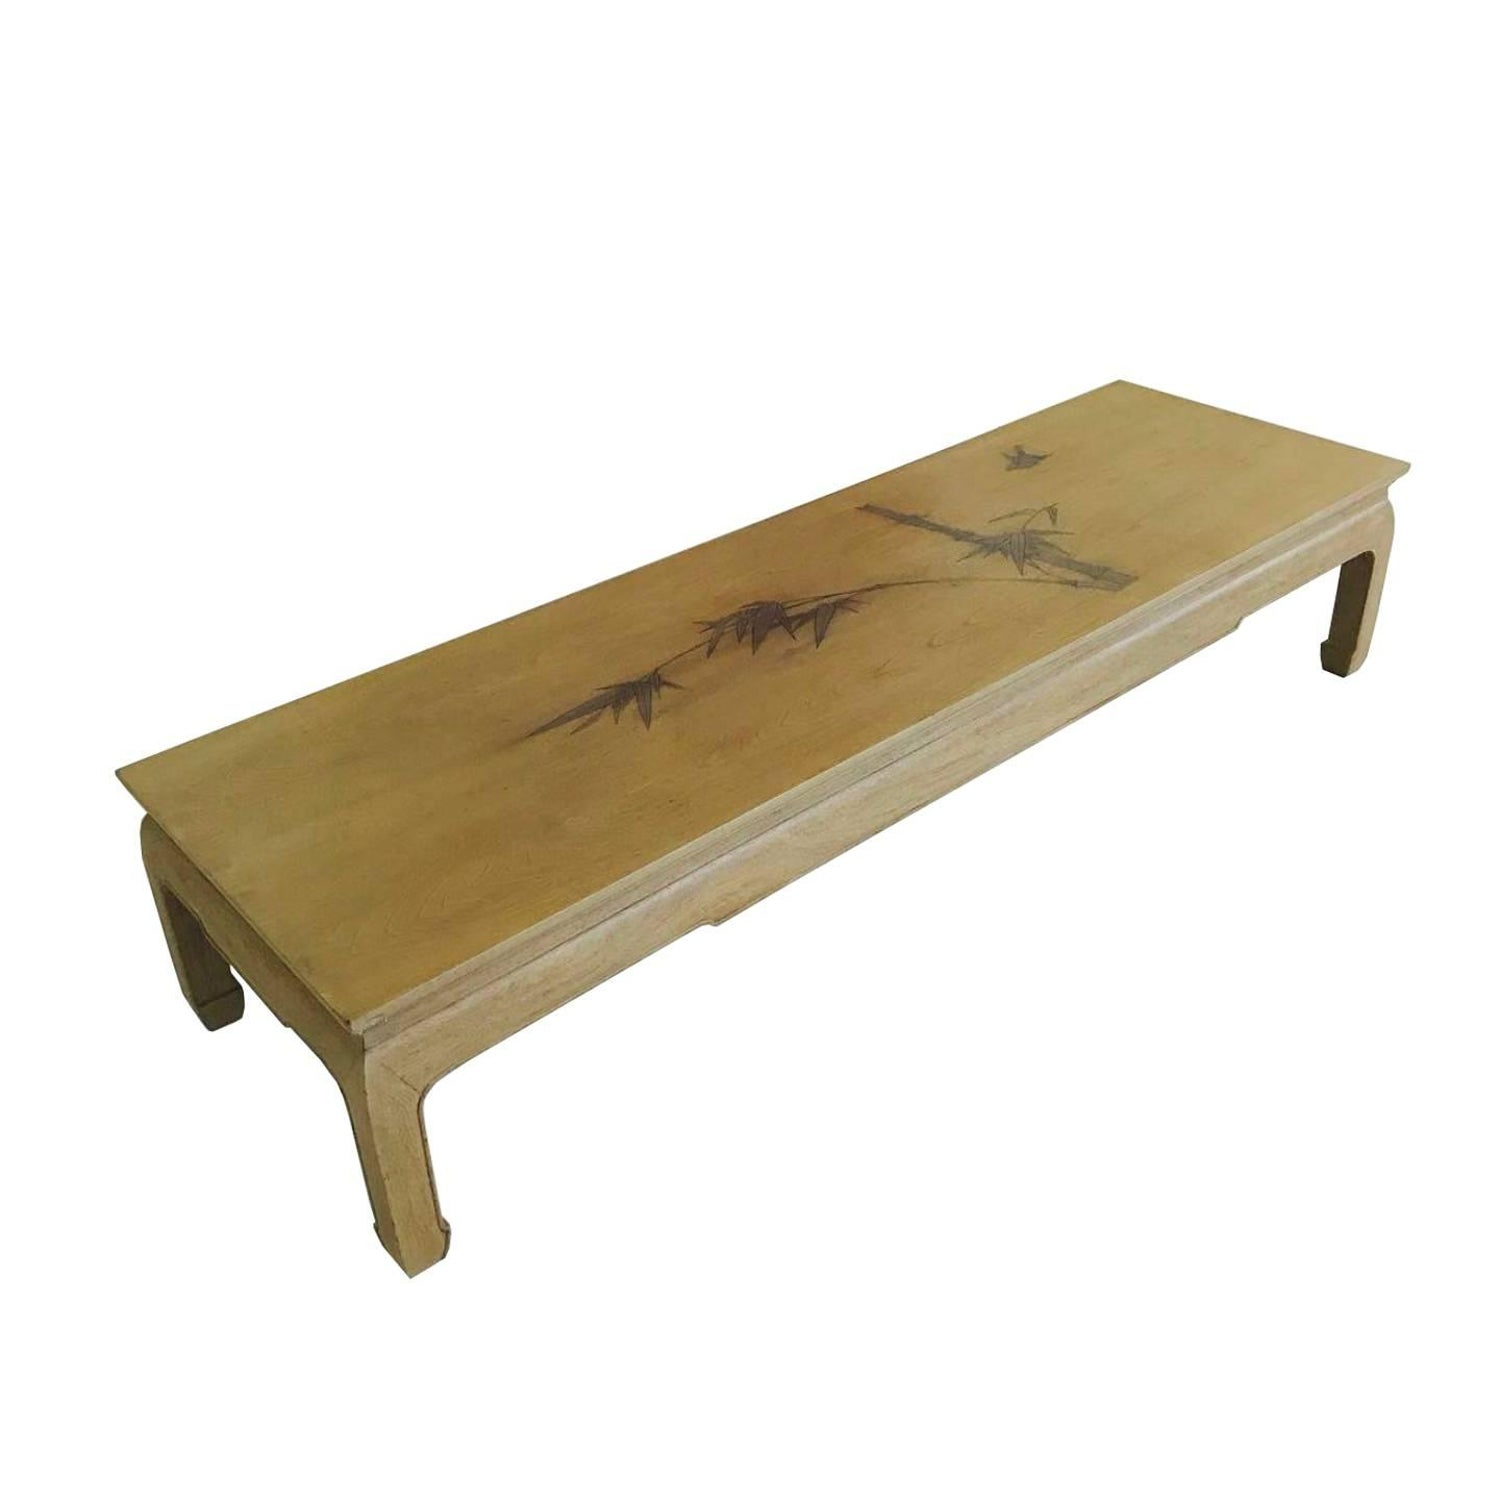 Bleached Mahogany Ming Coffee Table with Inlaid Bamboo Leaf Design